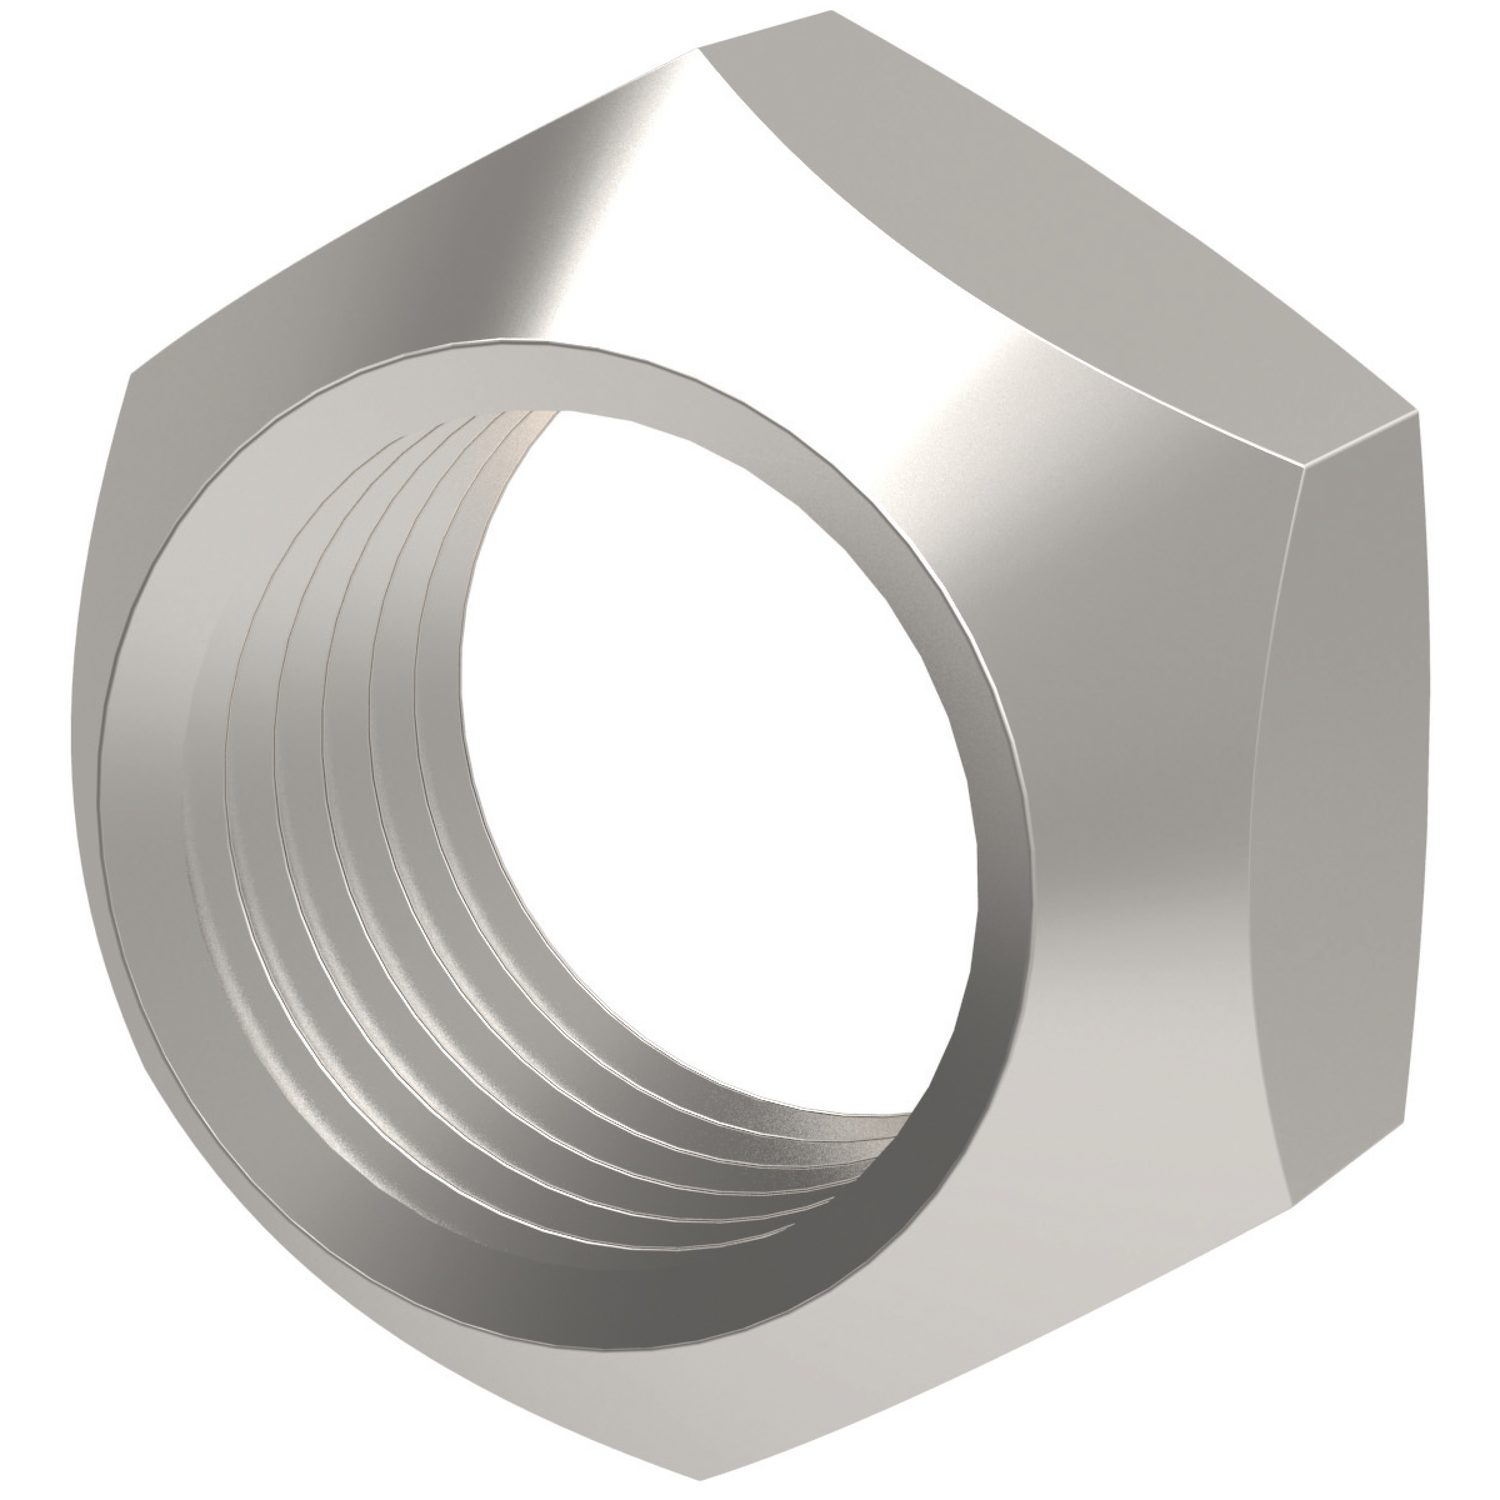 Stover Nuts Stainless steel A2. Reusable, resistant to shocks, vibrations and dynamic loads.